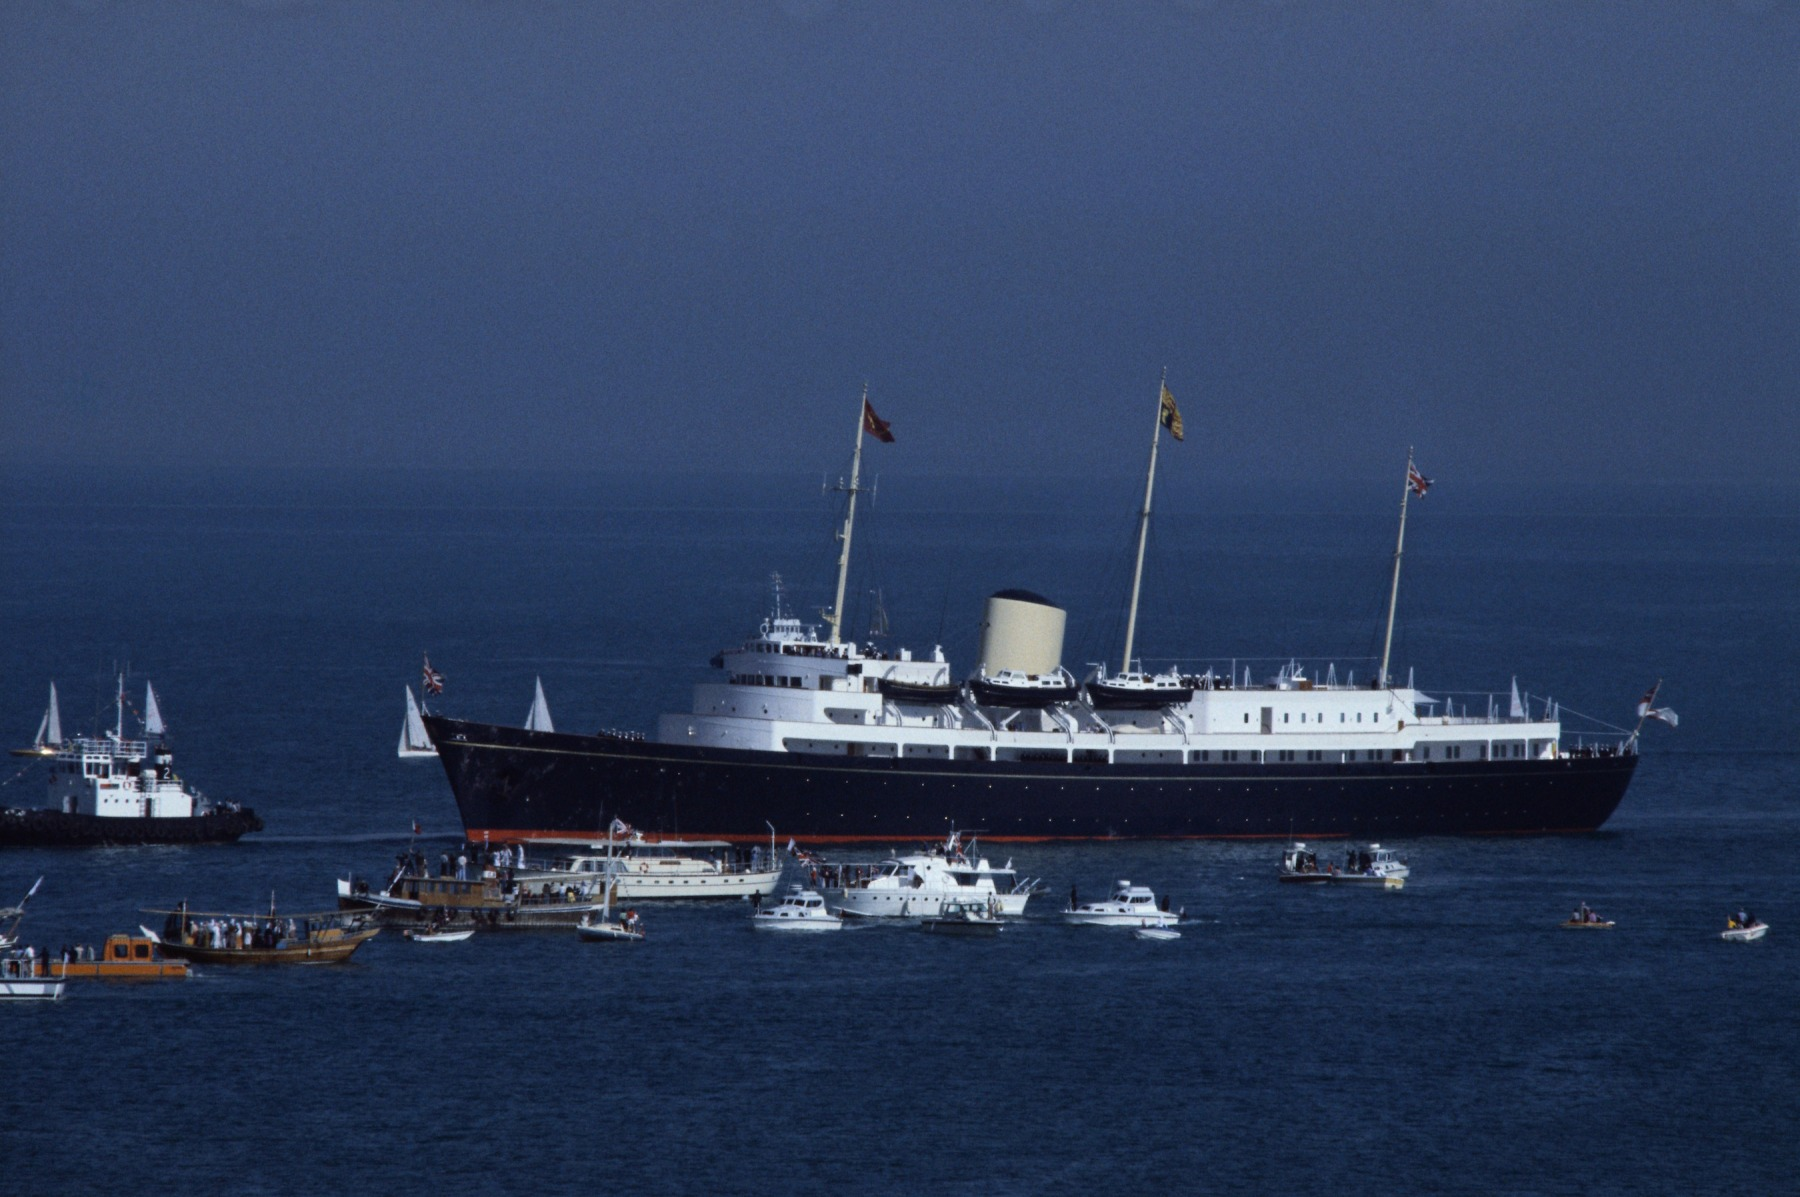 Her Majesty's Yacht Britannia, also known as the Royal Yacht Britannia, is the former royal yacht of the British monarch, Queen Elizabeth II, in service from 1954 until 1997. It currently sits at dock in Scotland. (Photo by David Levenson/Getty Images)